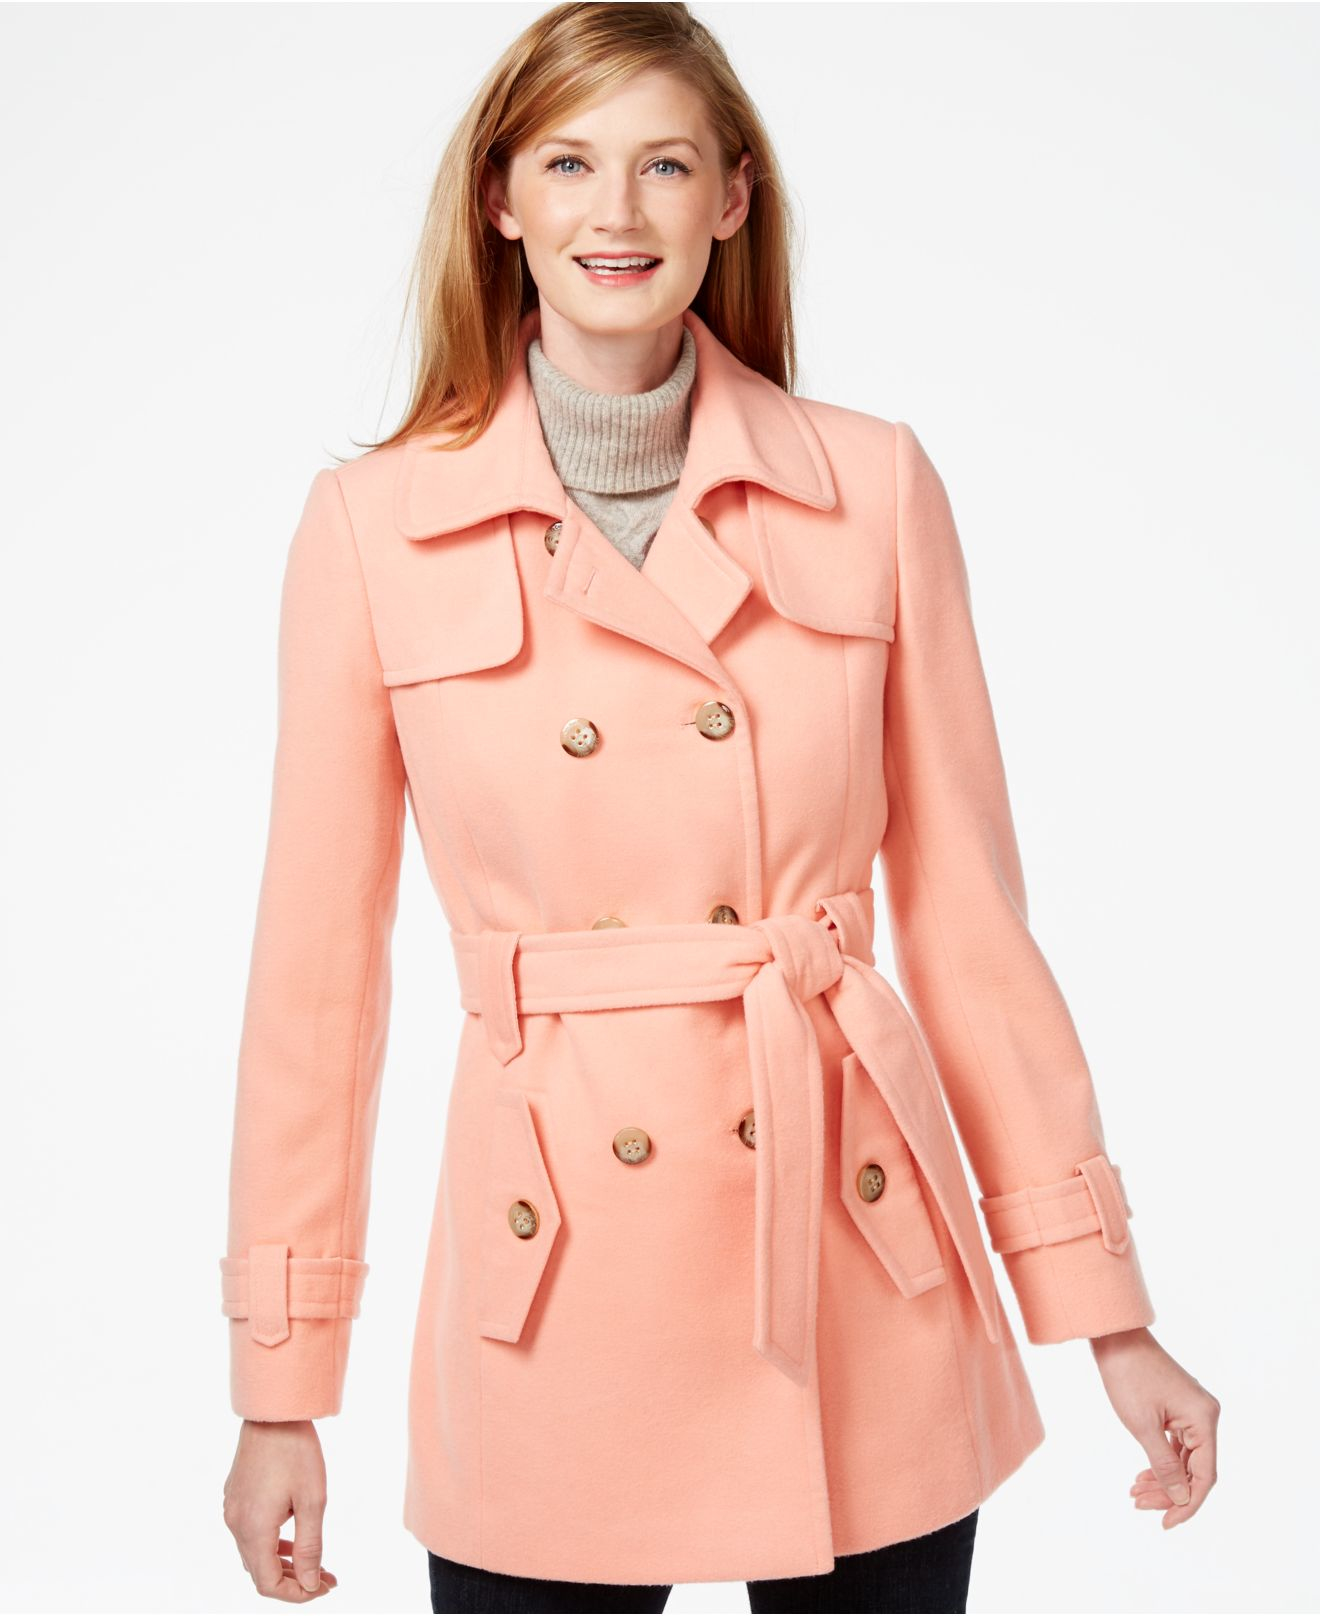 Calvin klein Double-breasted Peacoat in Orange | Lyst